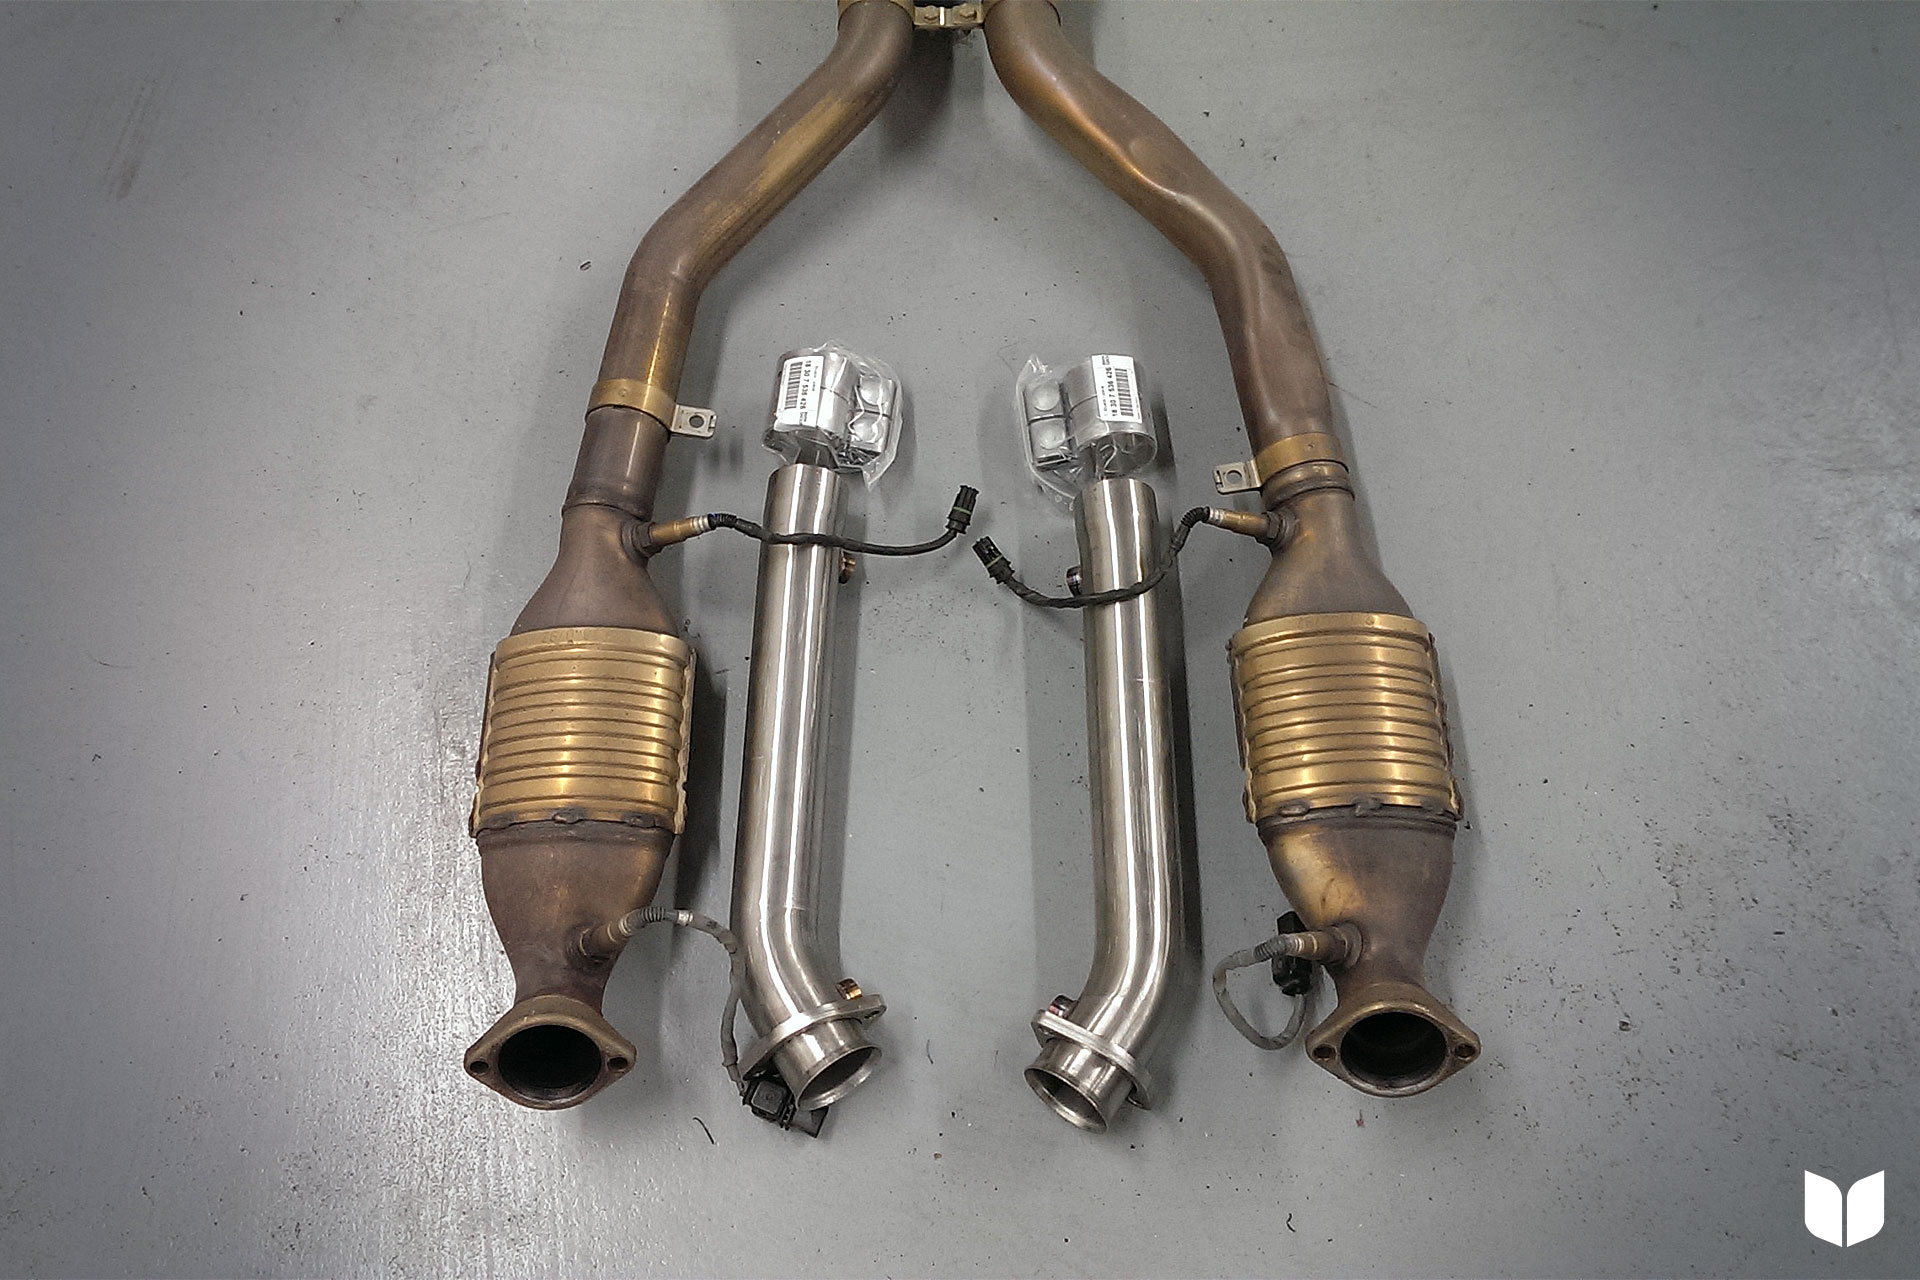 The E9X M3 Turner Motorsport Test Pipes